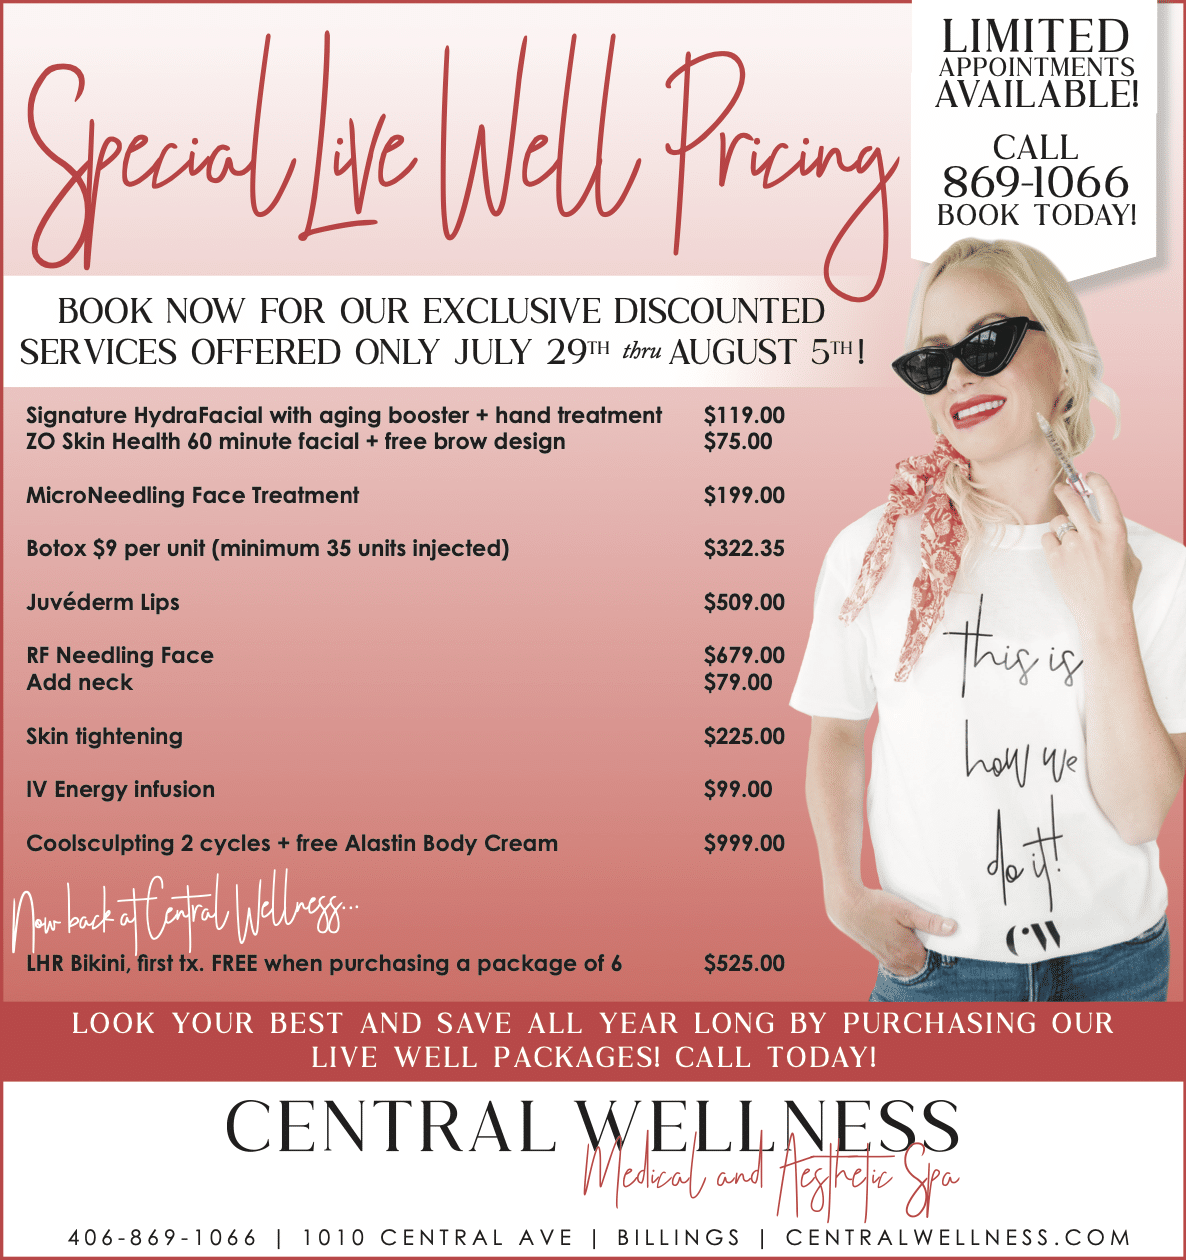 Central Wellness Live Well 2021 Specials